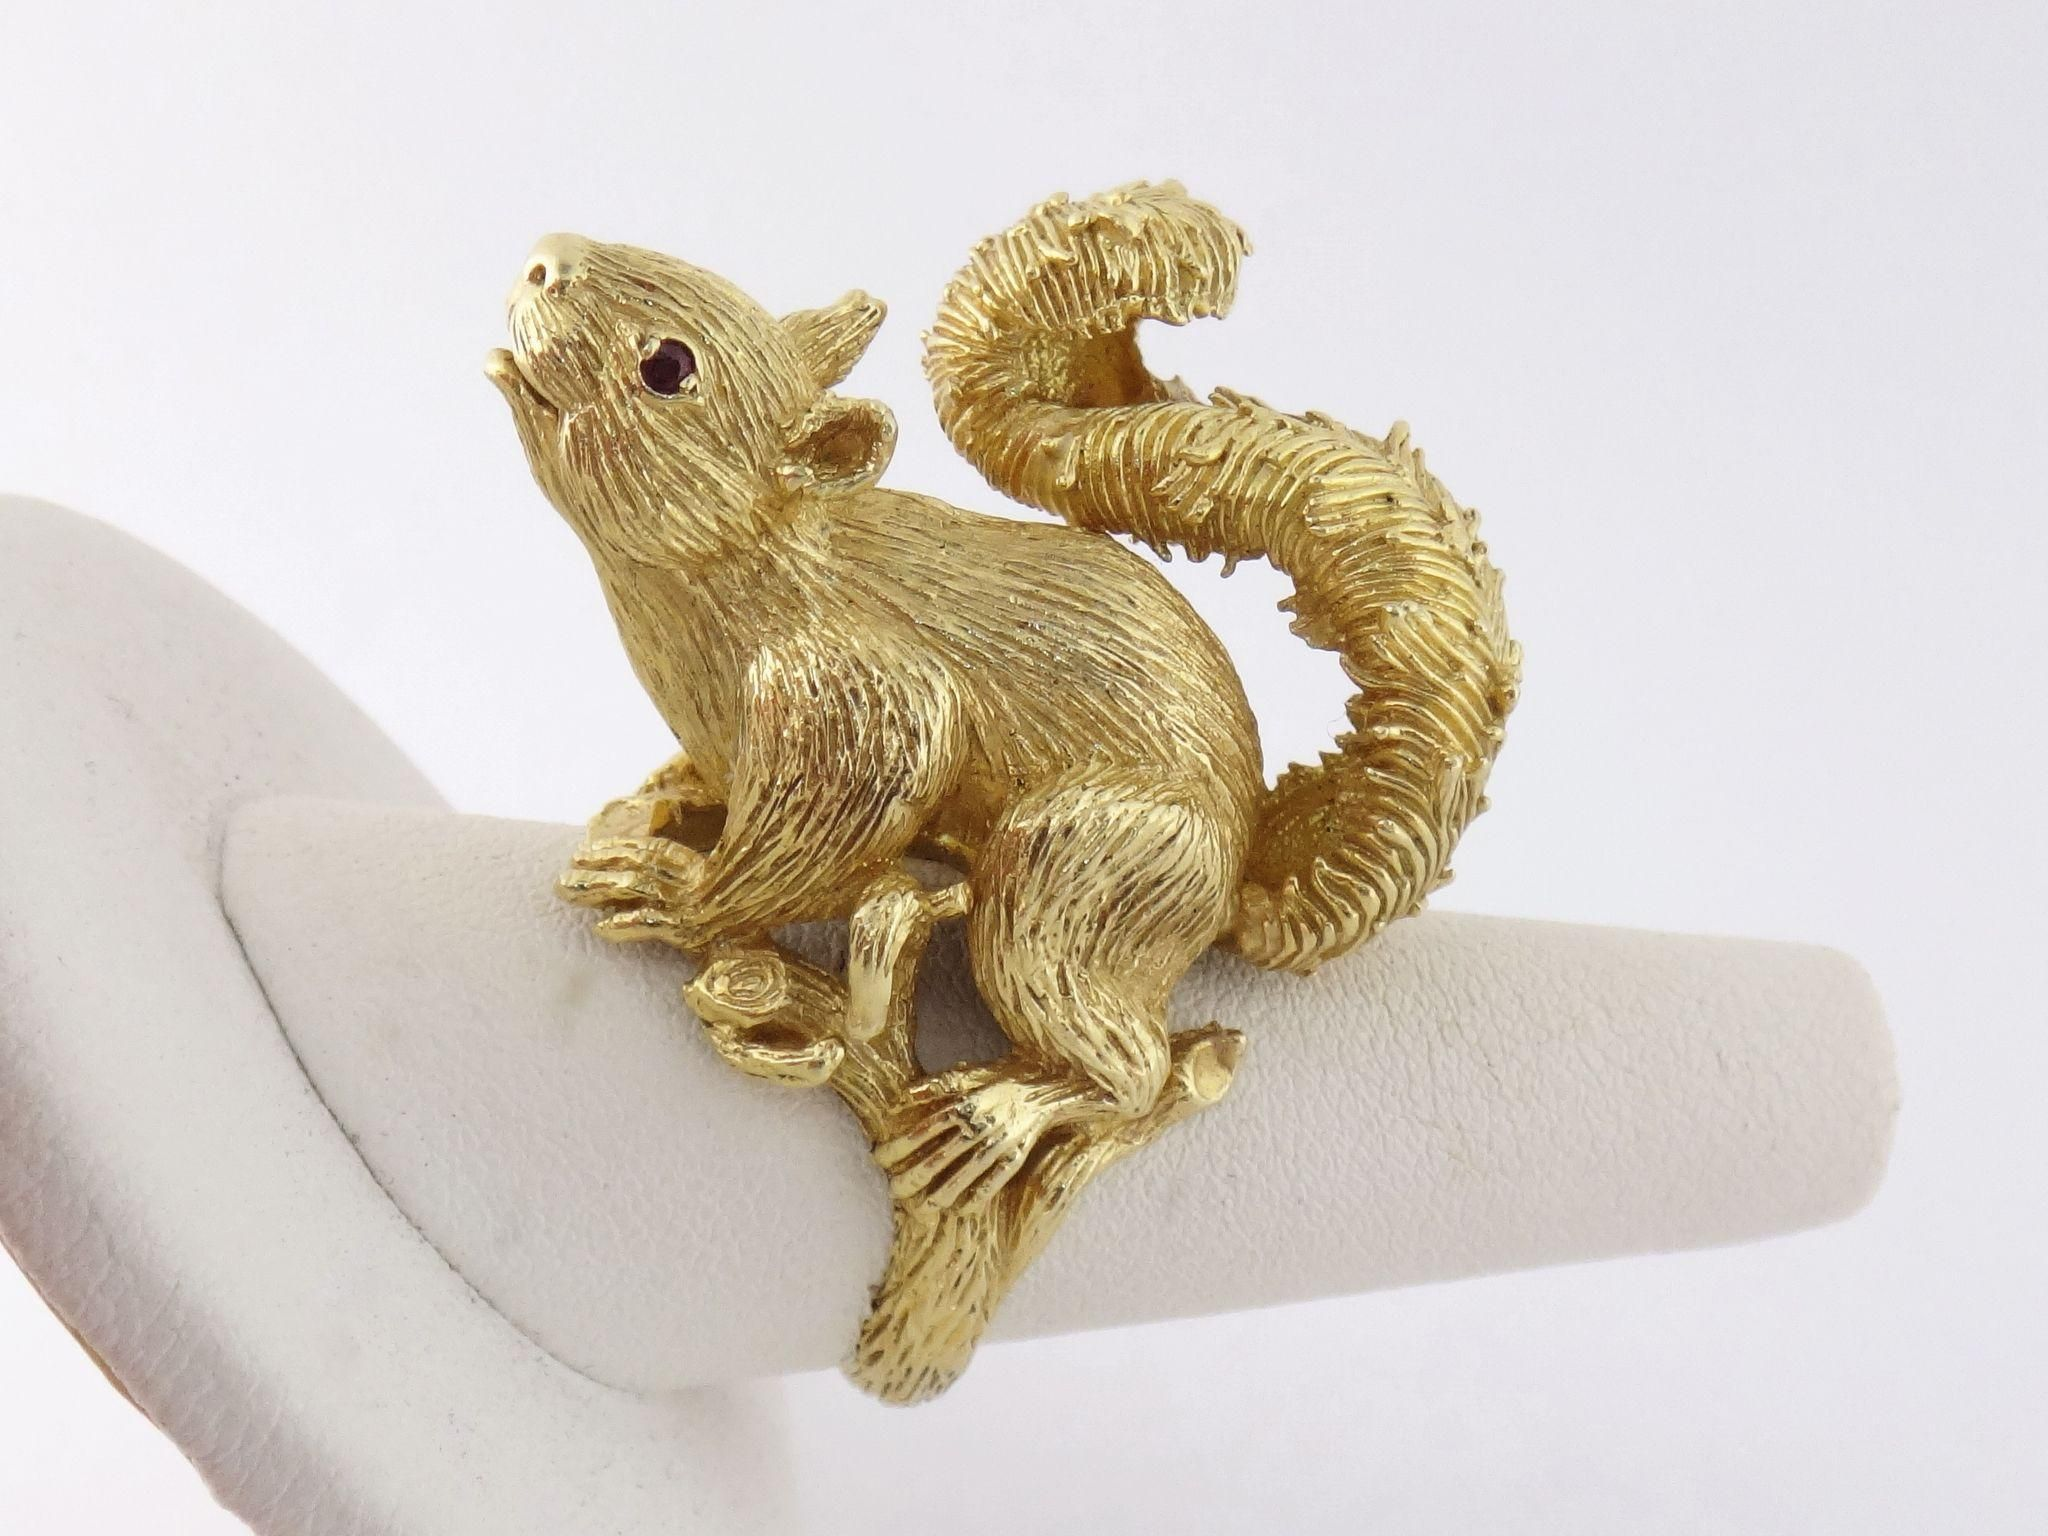 Vintage Estate Kurt Wayne 18K Yellow Gold Squirrel Ring, c. 1969